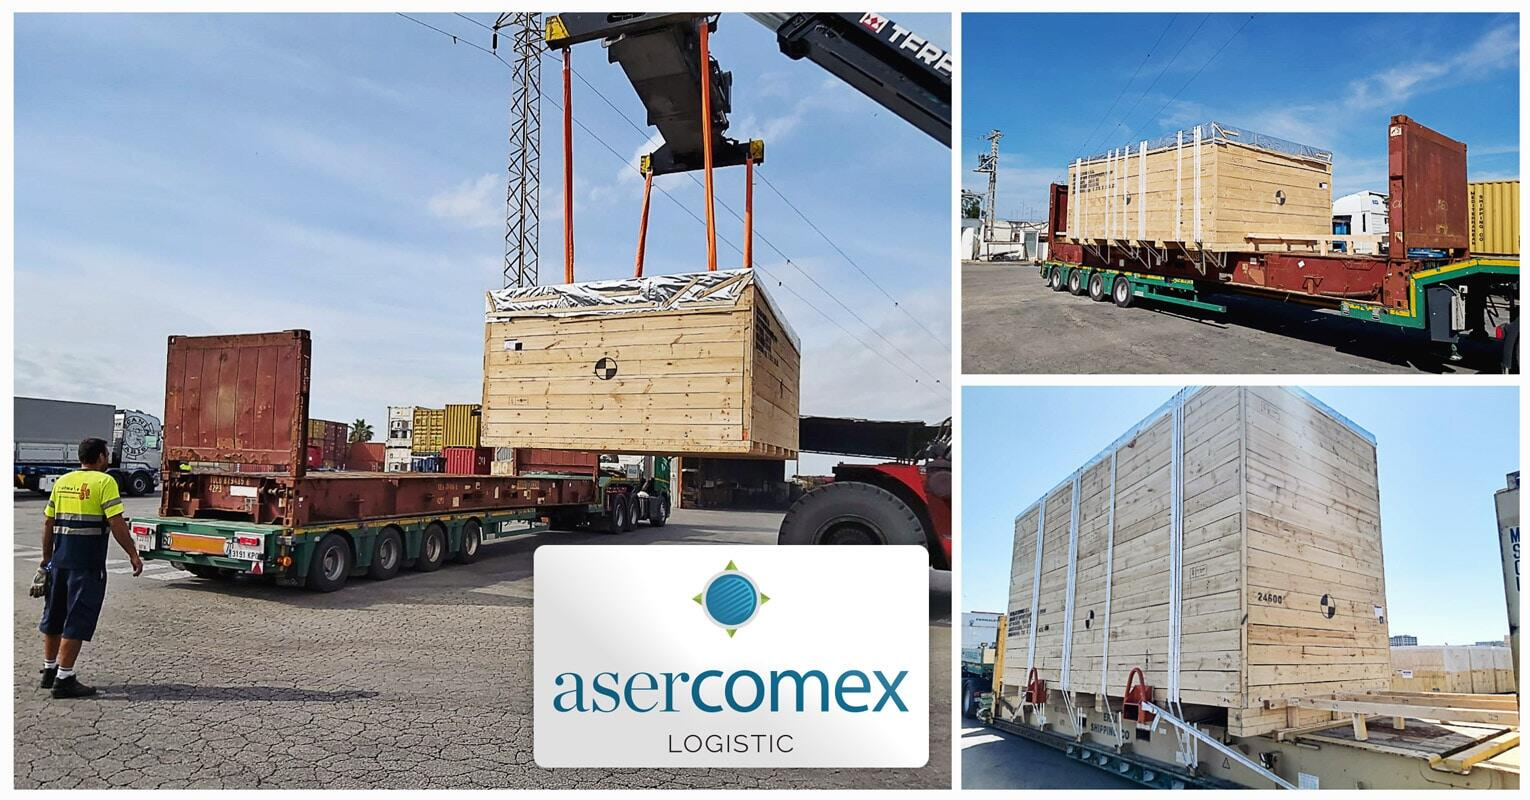 Asercomex Shipped Machinery from Spain to China